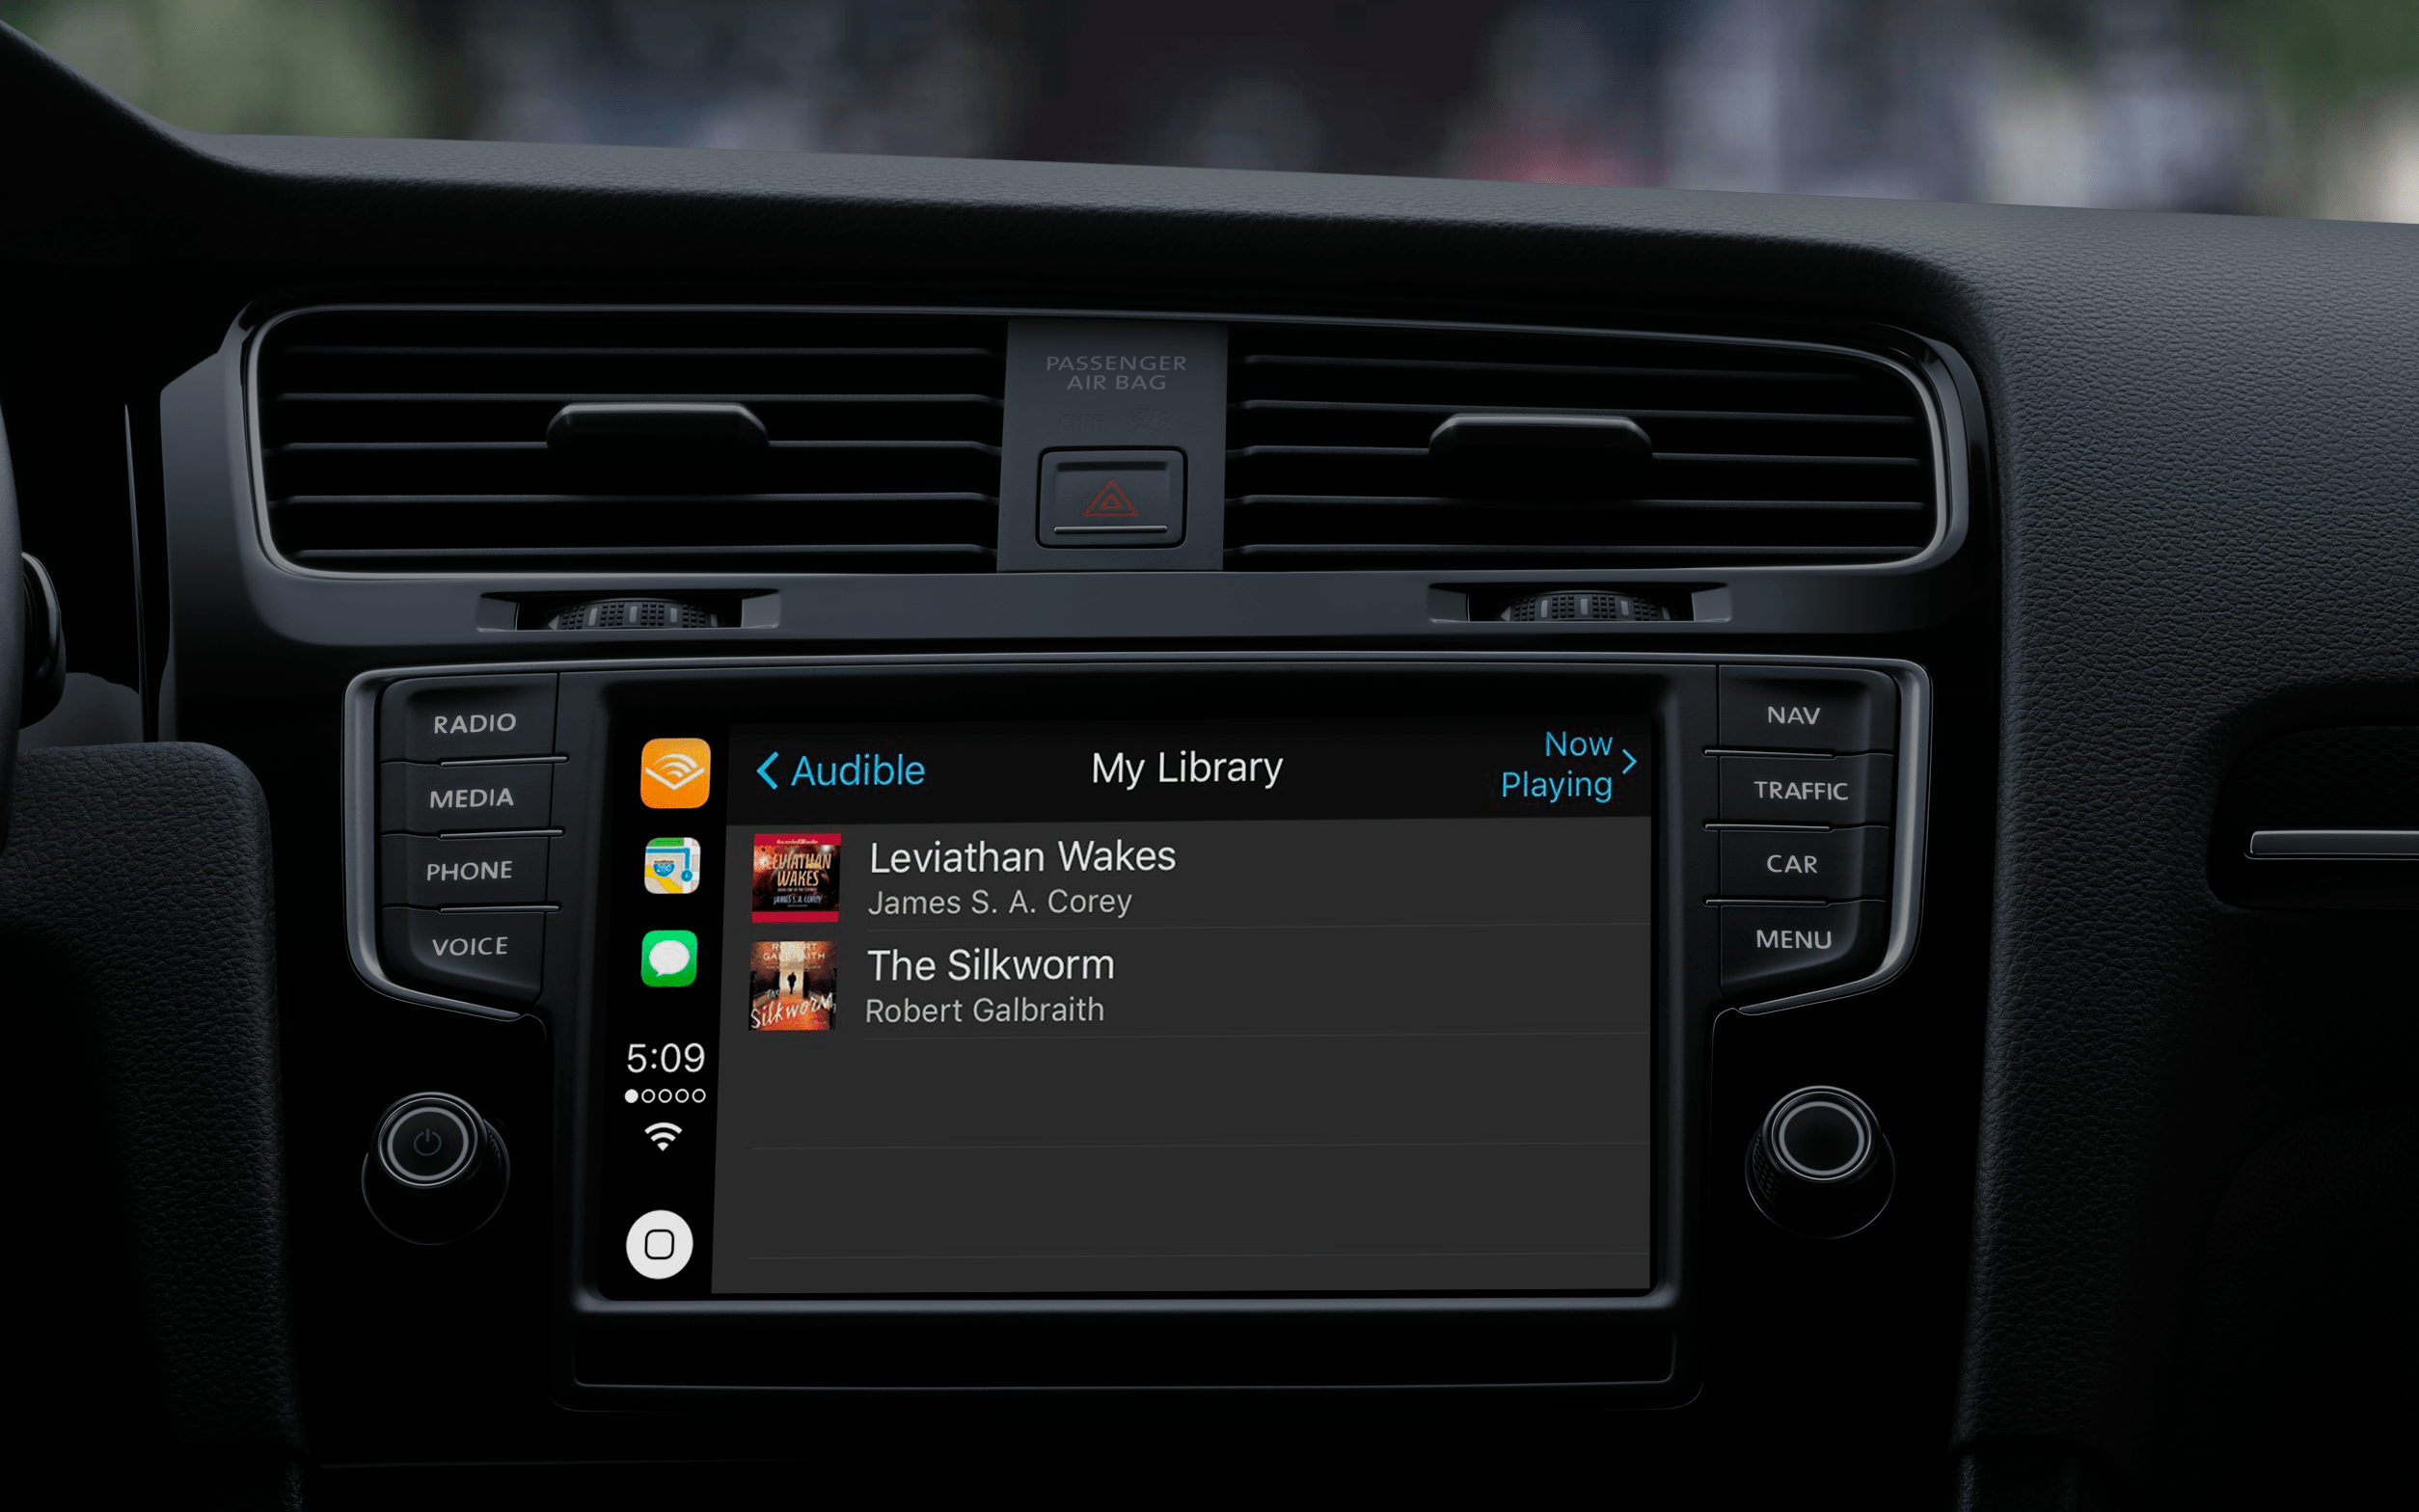 Apps supported by apple CarPlay: Audible